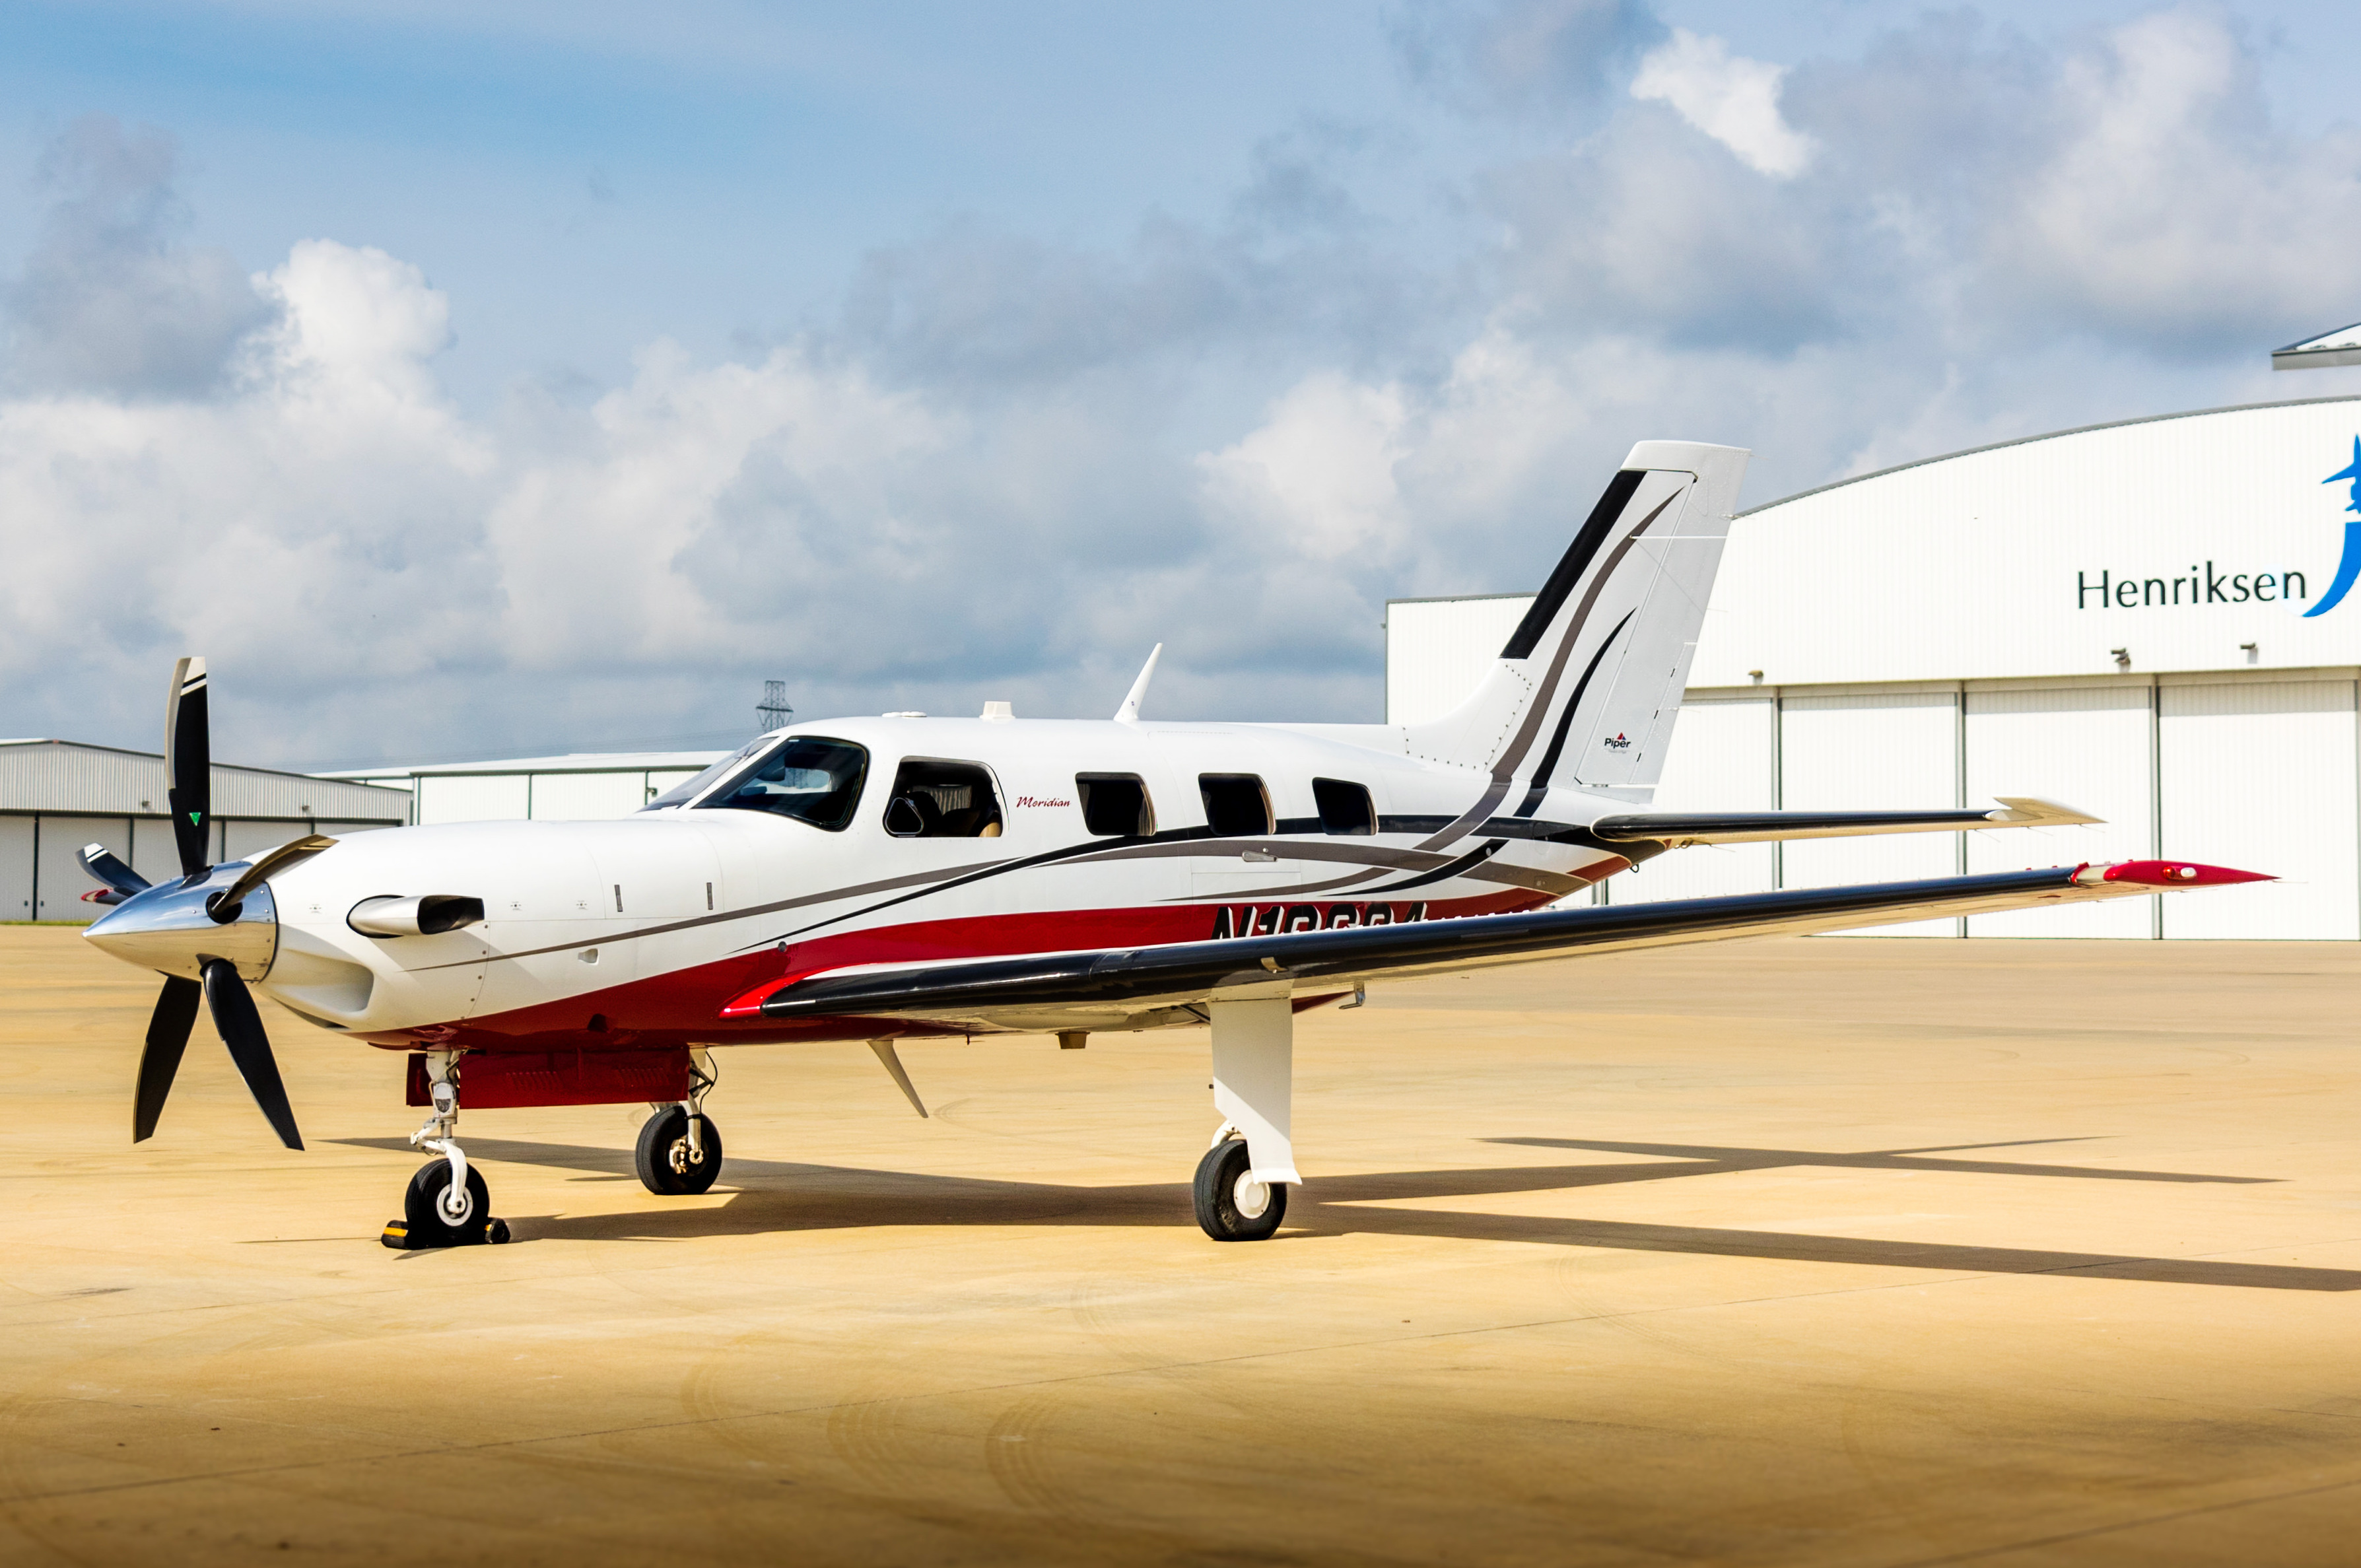 Aircraft Listing - Meridian PA46-500TP listed for sale